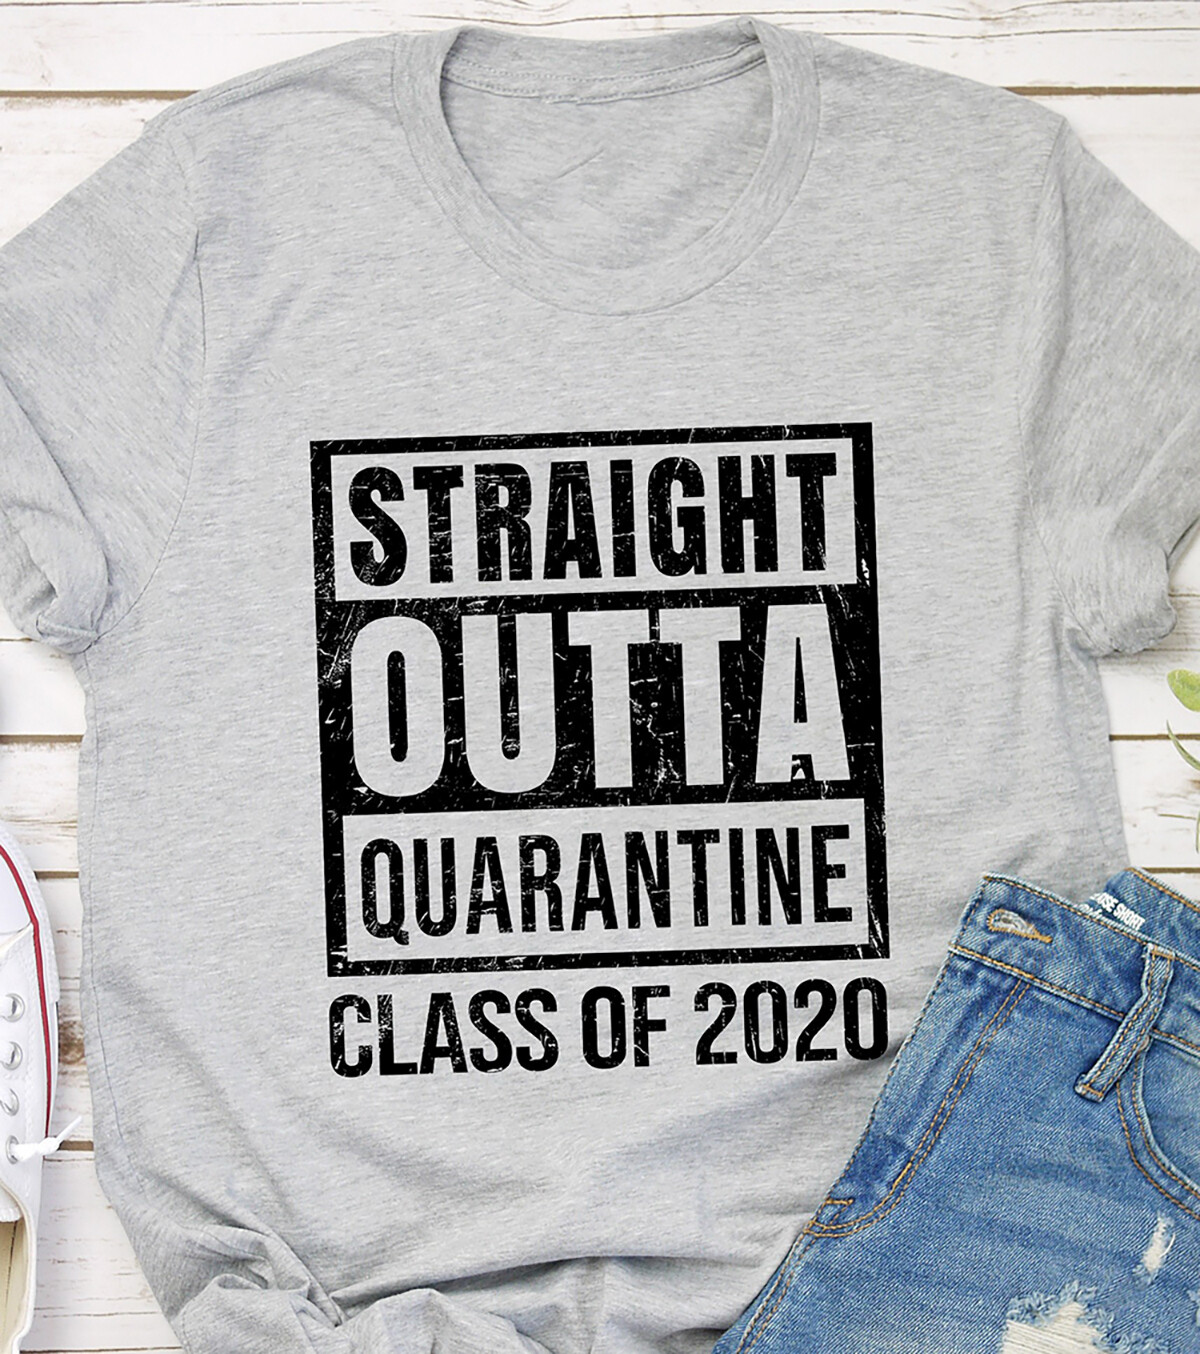 Straight Outta Quarantine Class Of 2020 T Shirt Unisex Shirt Short-Sleeve Long-Sleeve V-Neck Tank Pullover Hoodie Sweatshirt Men Women Tee Gift